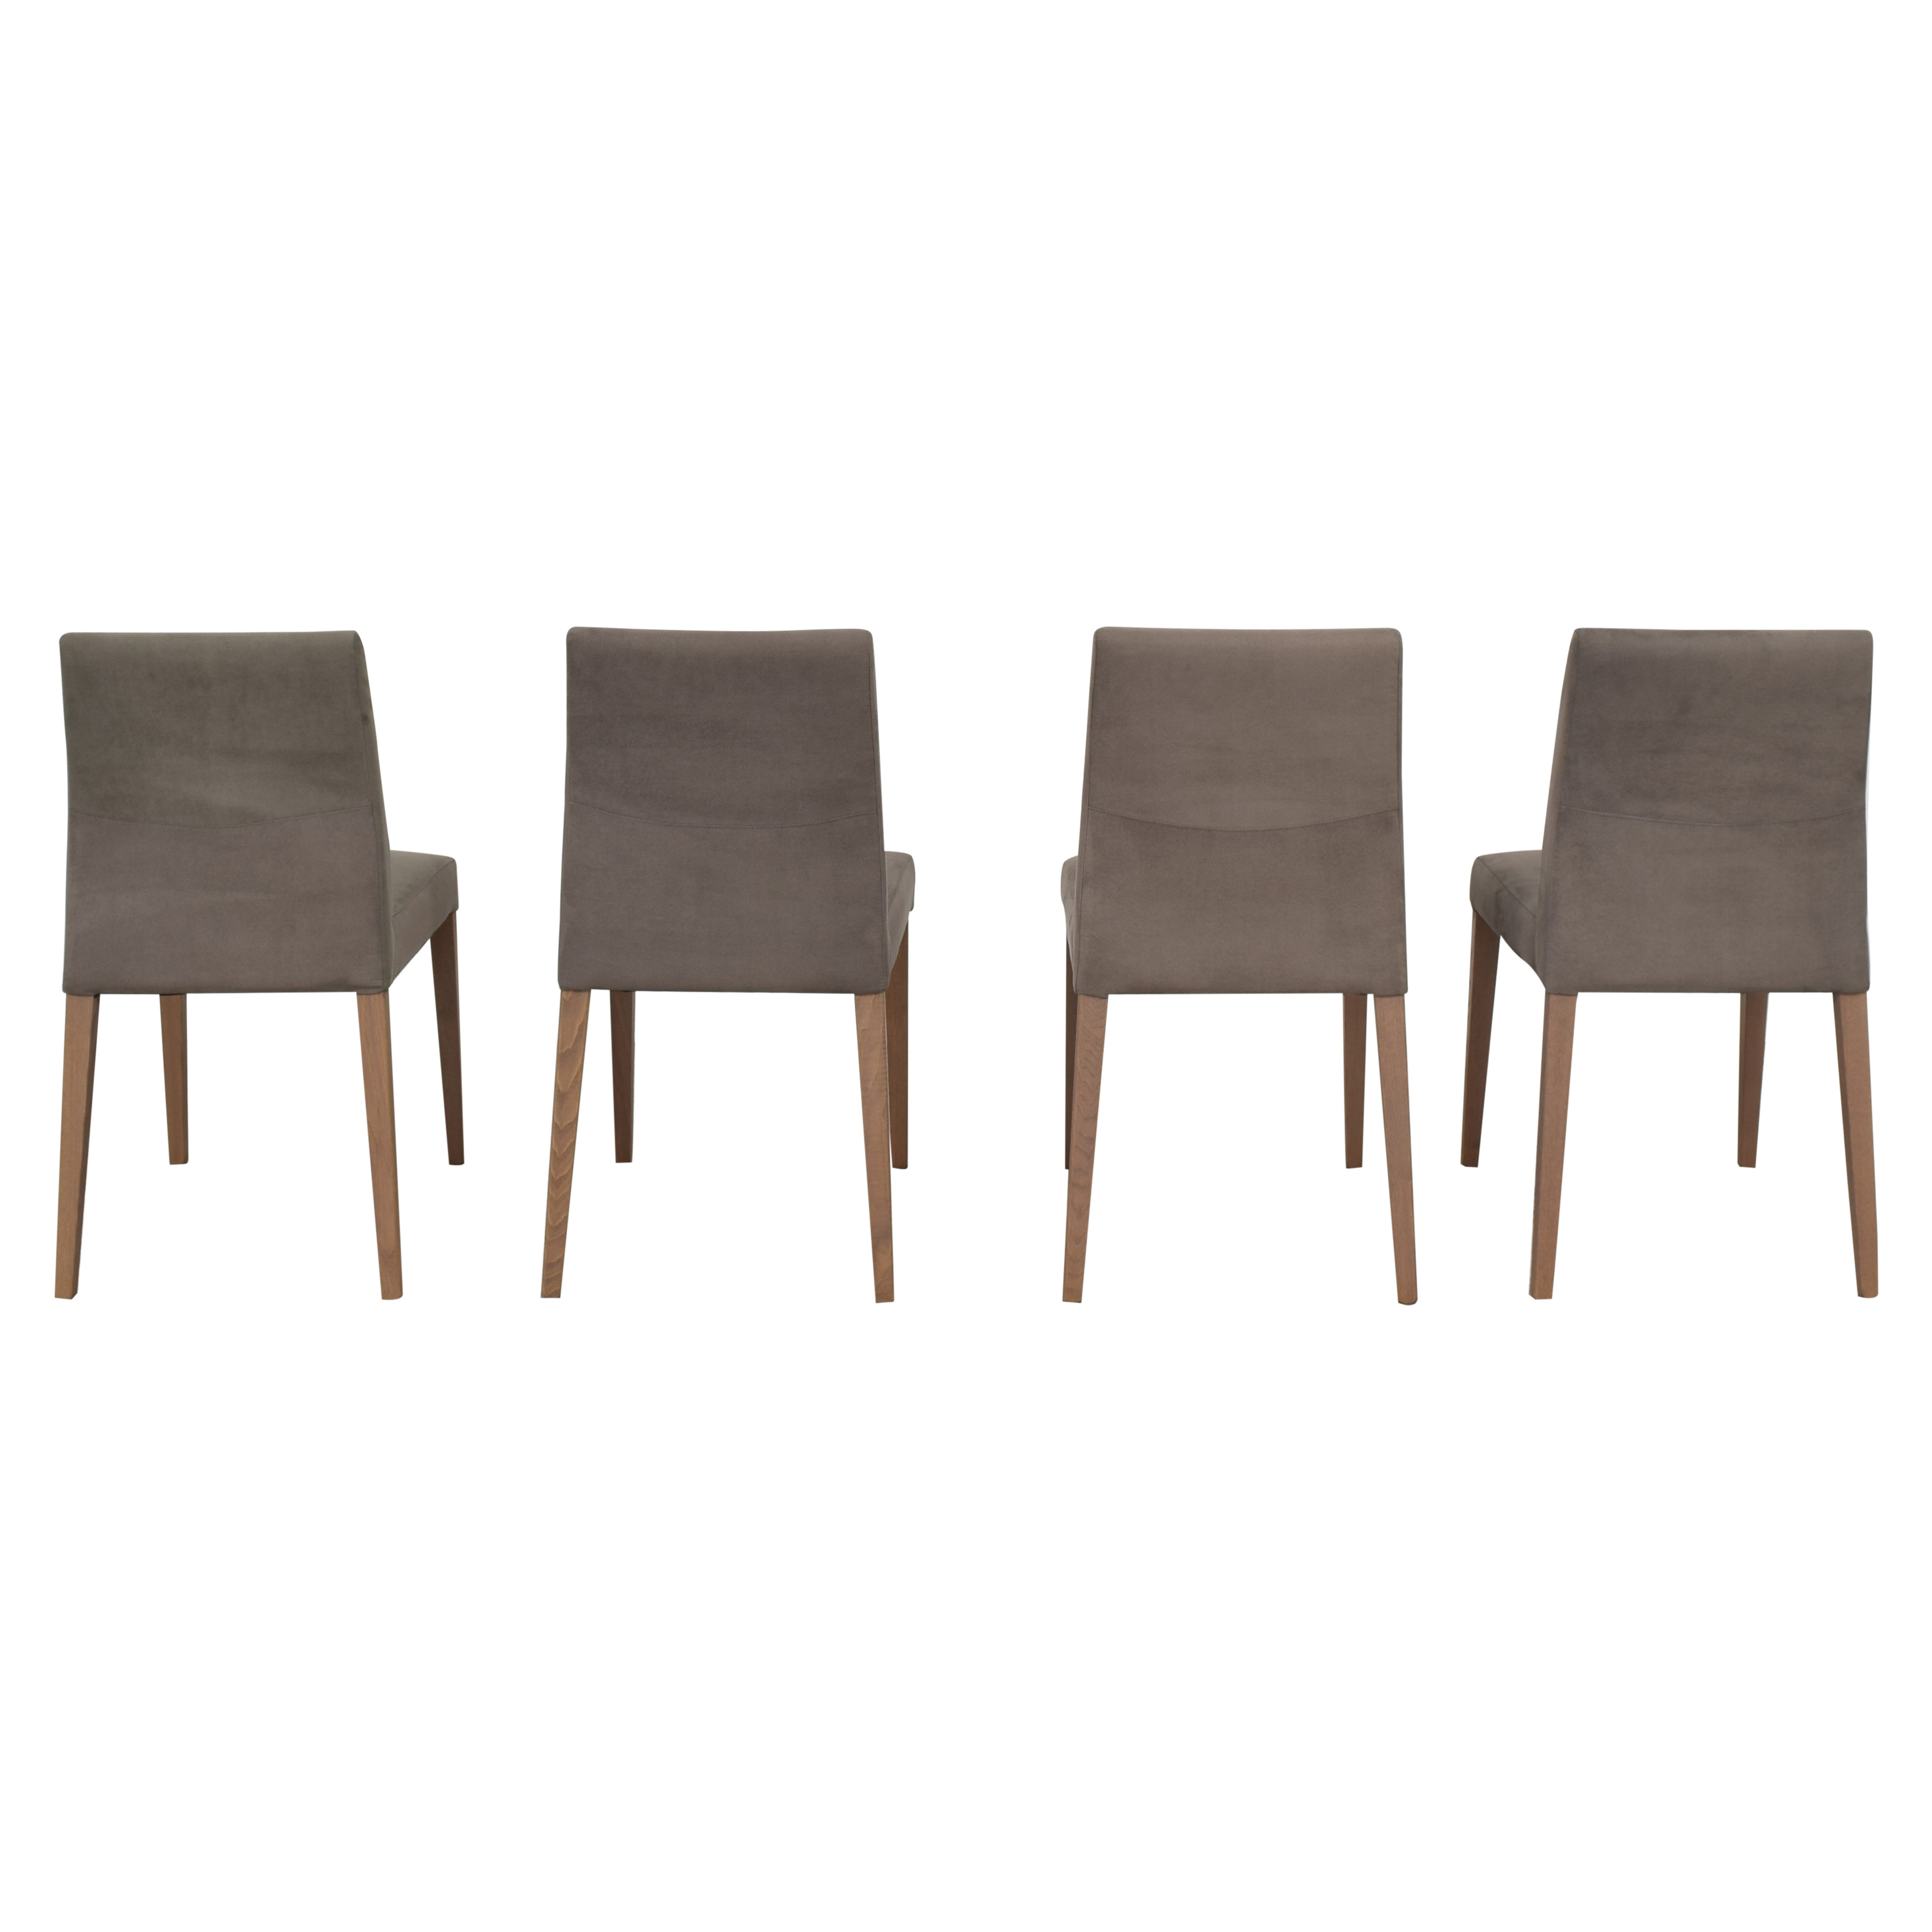 Crate & Barrel Crate & Barrel Lowe Upholstered Dining Chairs on sale